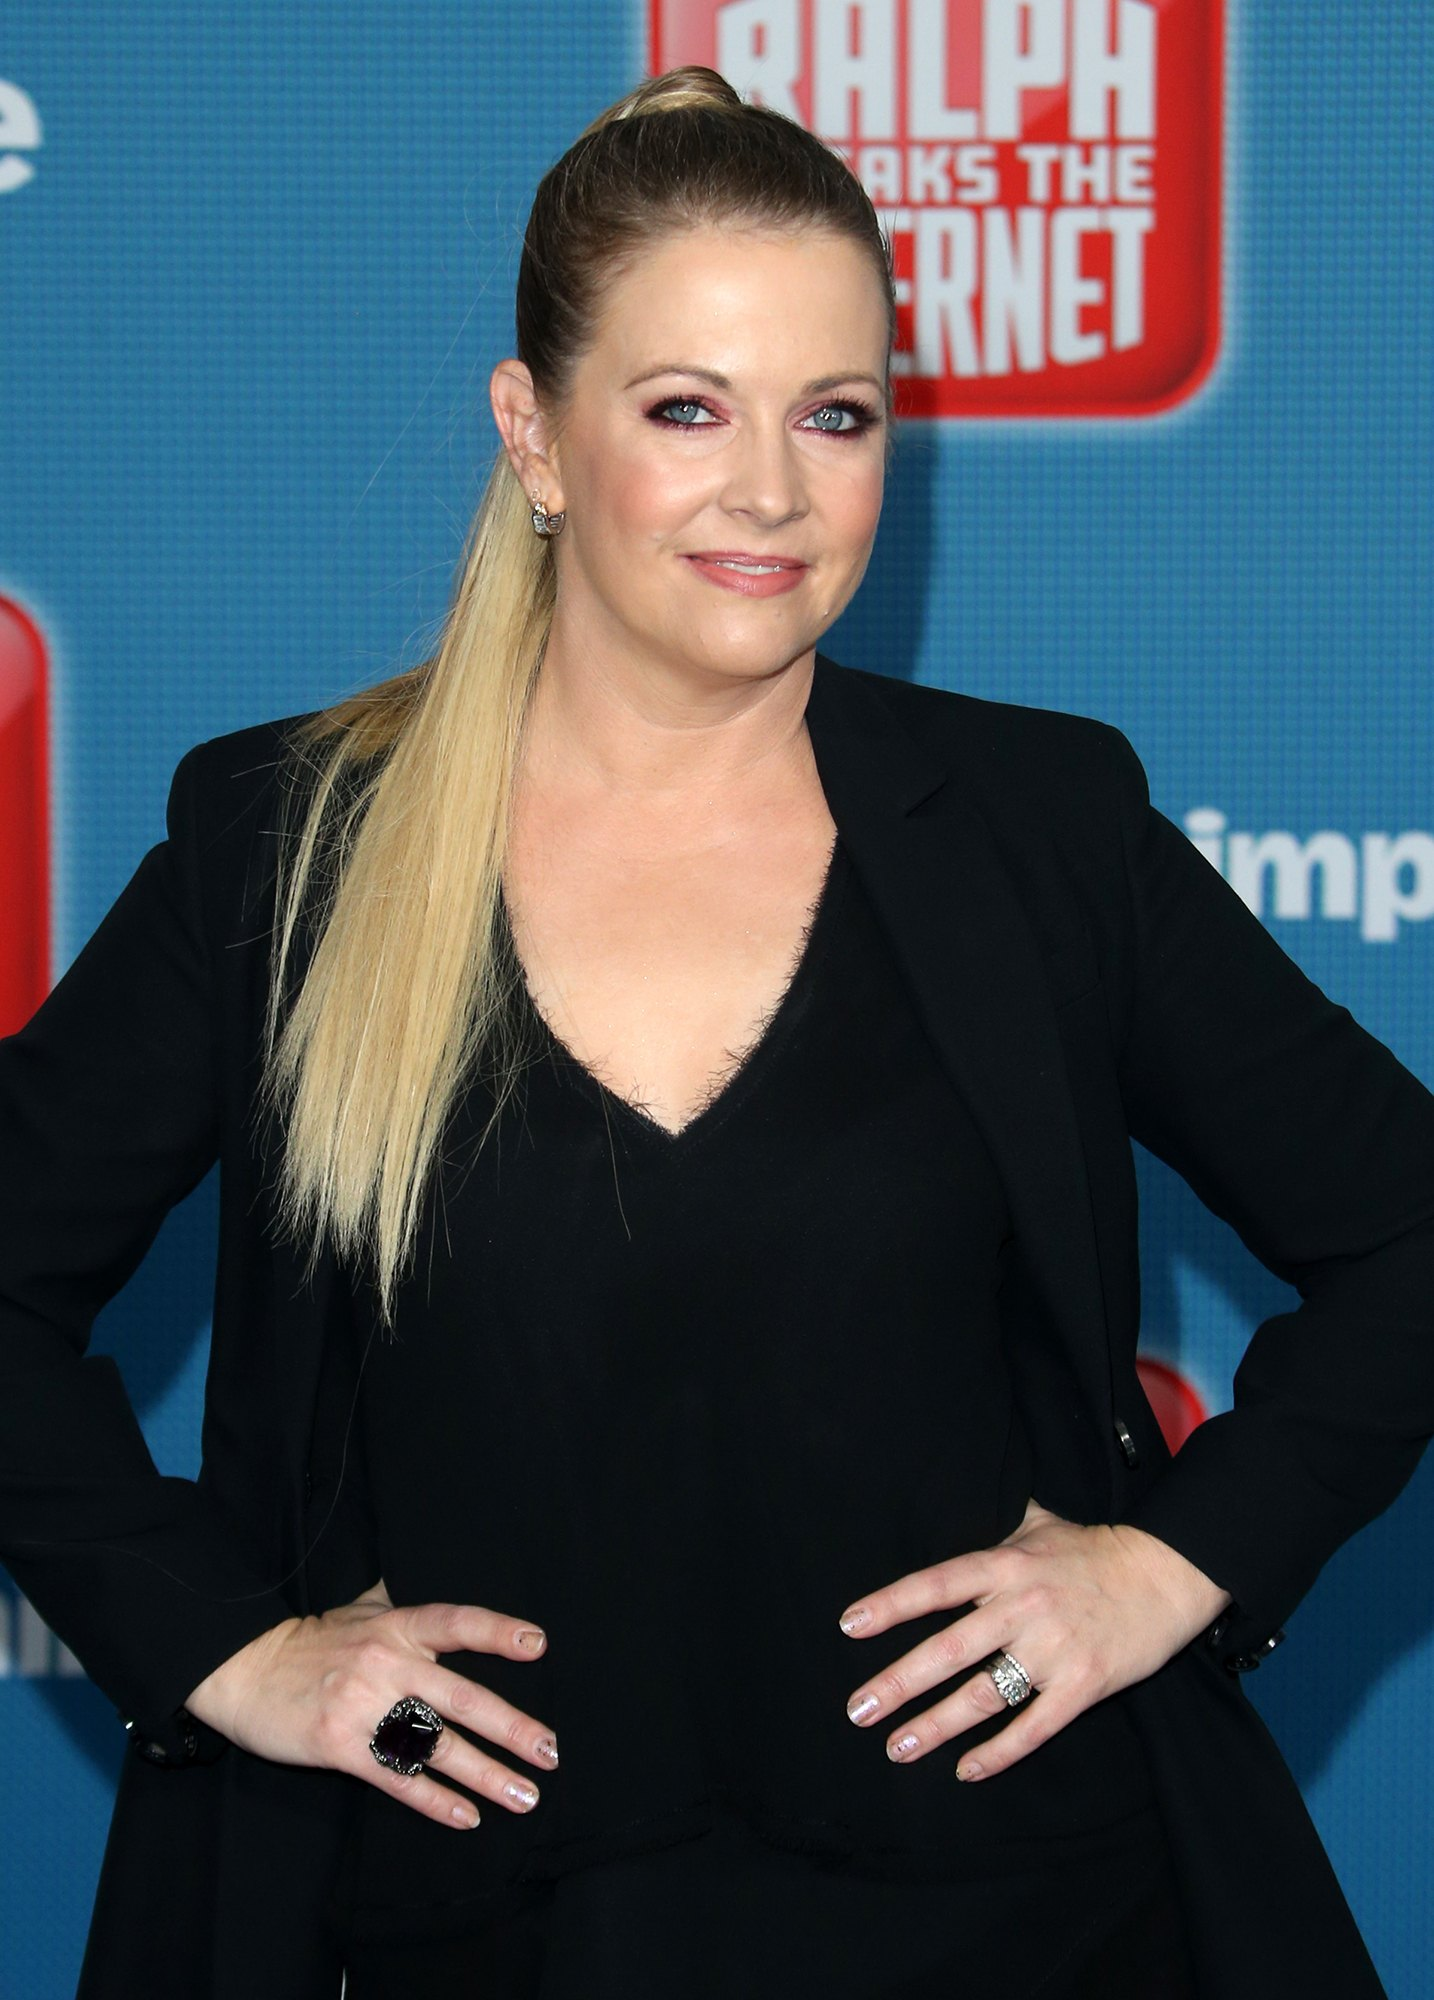 Melissa Joan Hart in Black Outfit